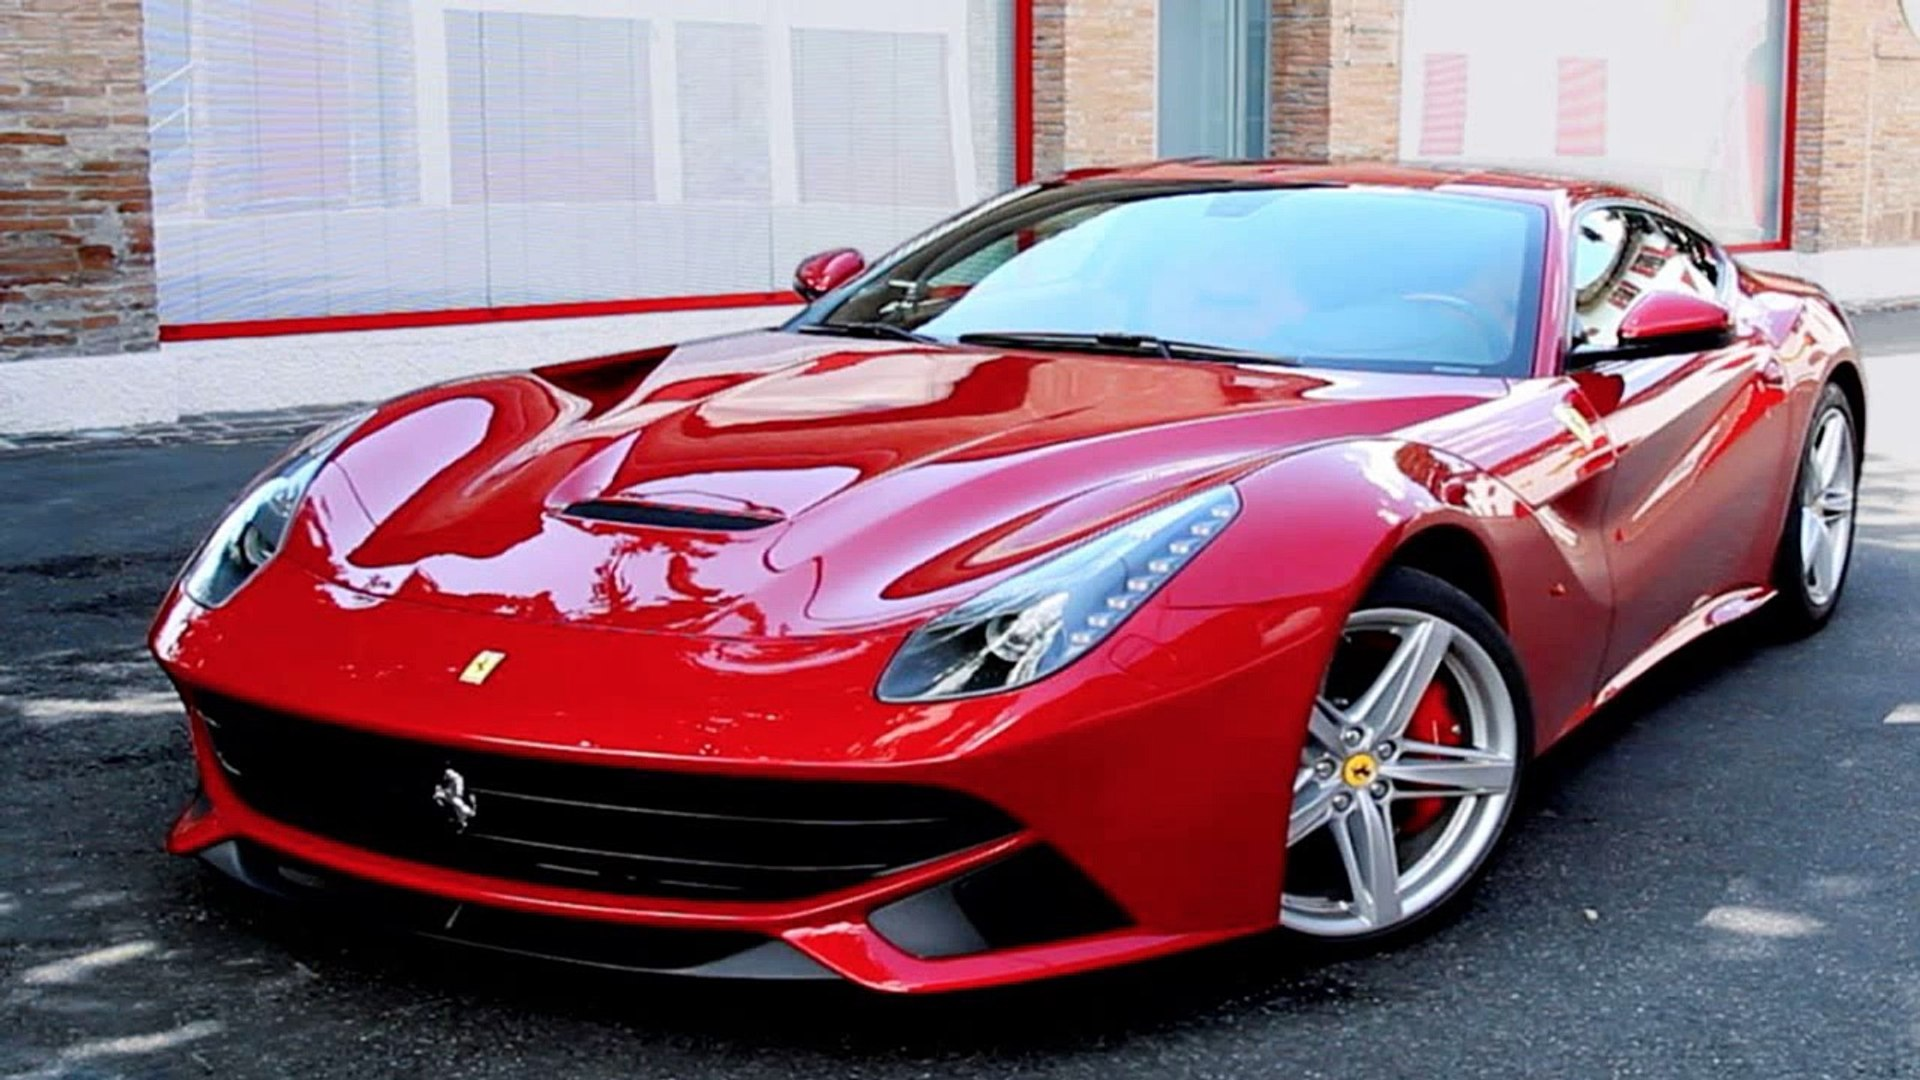 Ferrari F12berlinetta Test Drive Top Speed Interior And Exterior Car Review Video Dailymotion